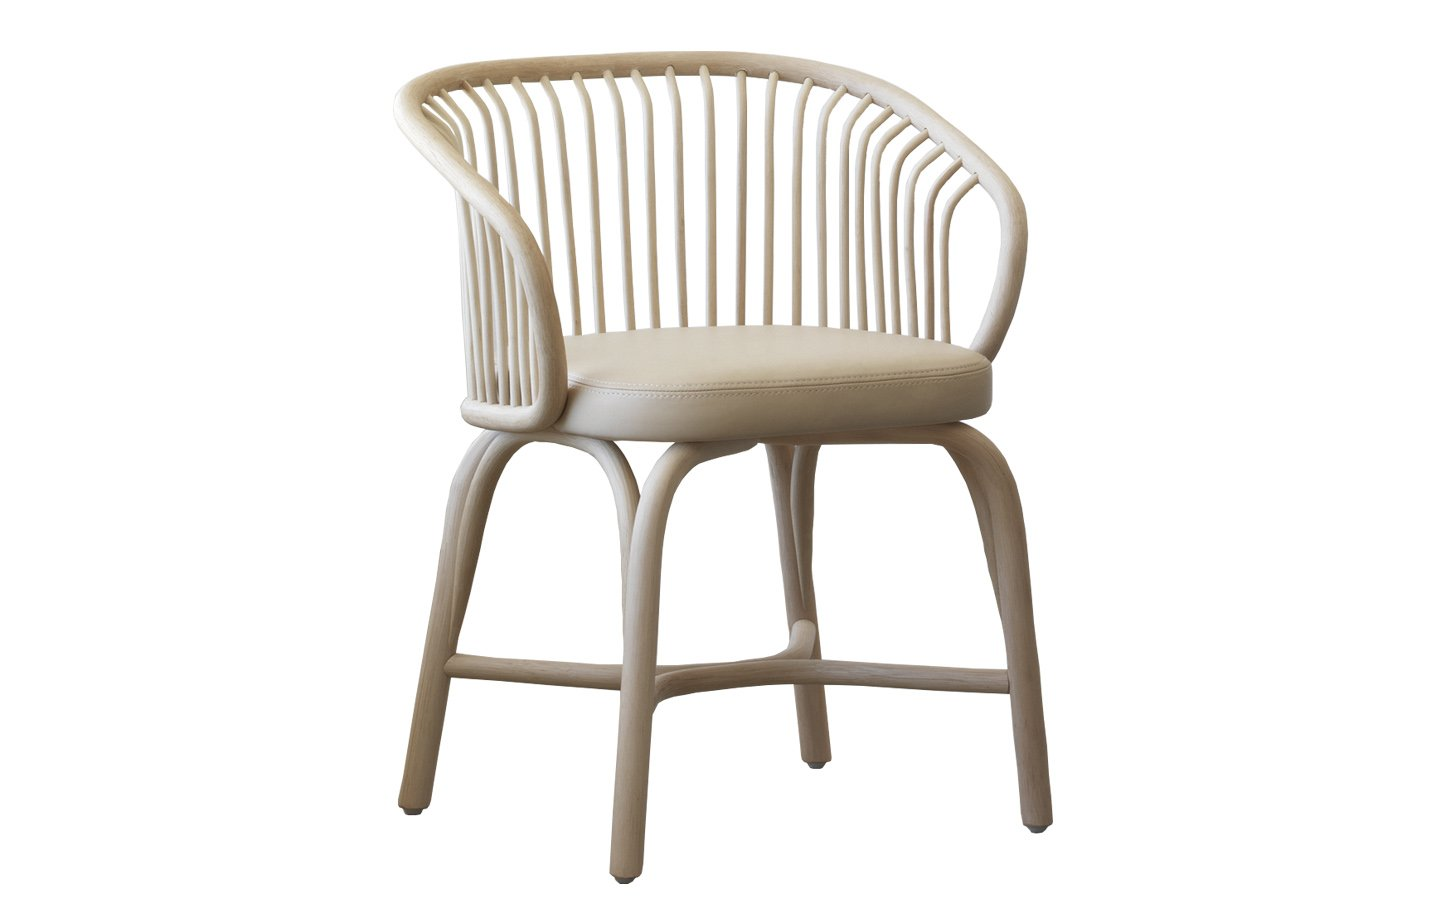 Huma Rattan Armchair - Natural by Expormim Fabric - Dolce 24